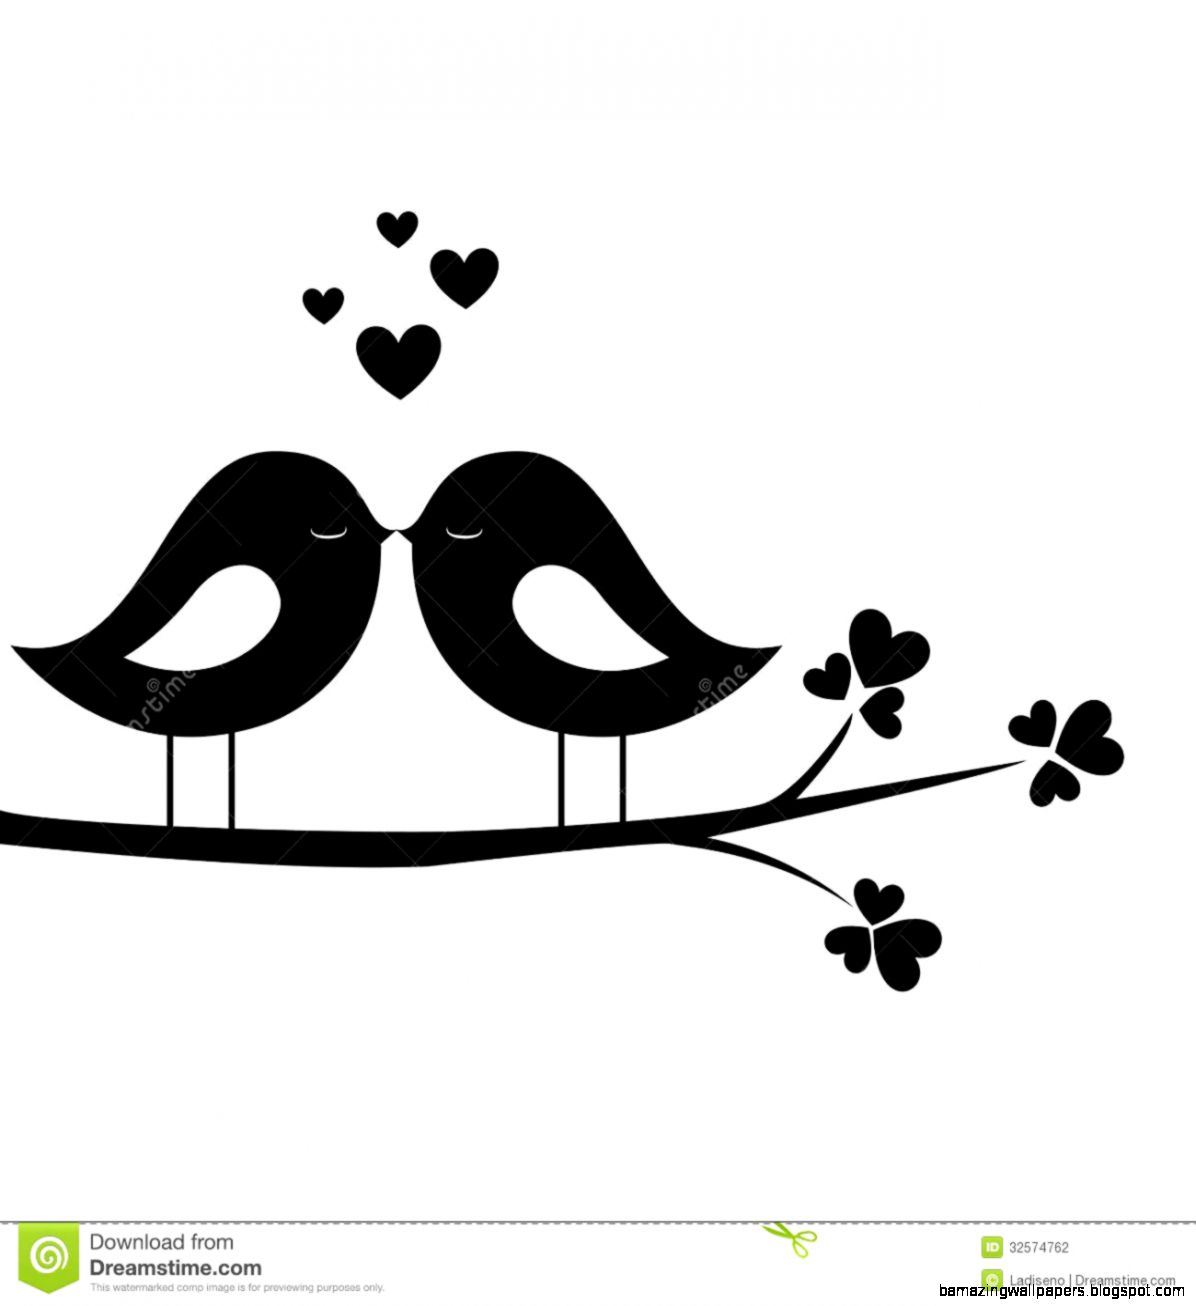 Love bird clip art - photo#24